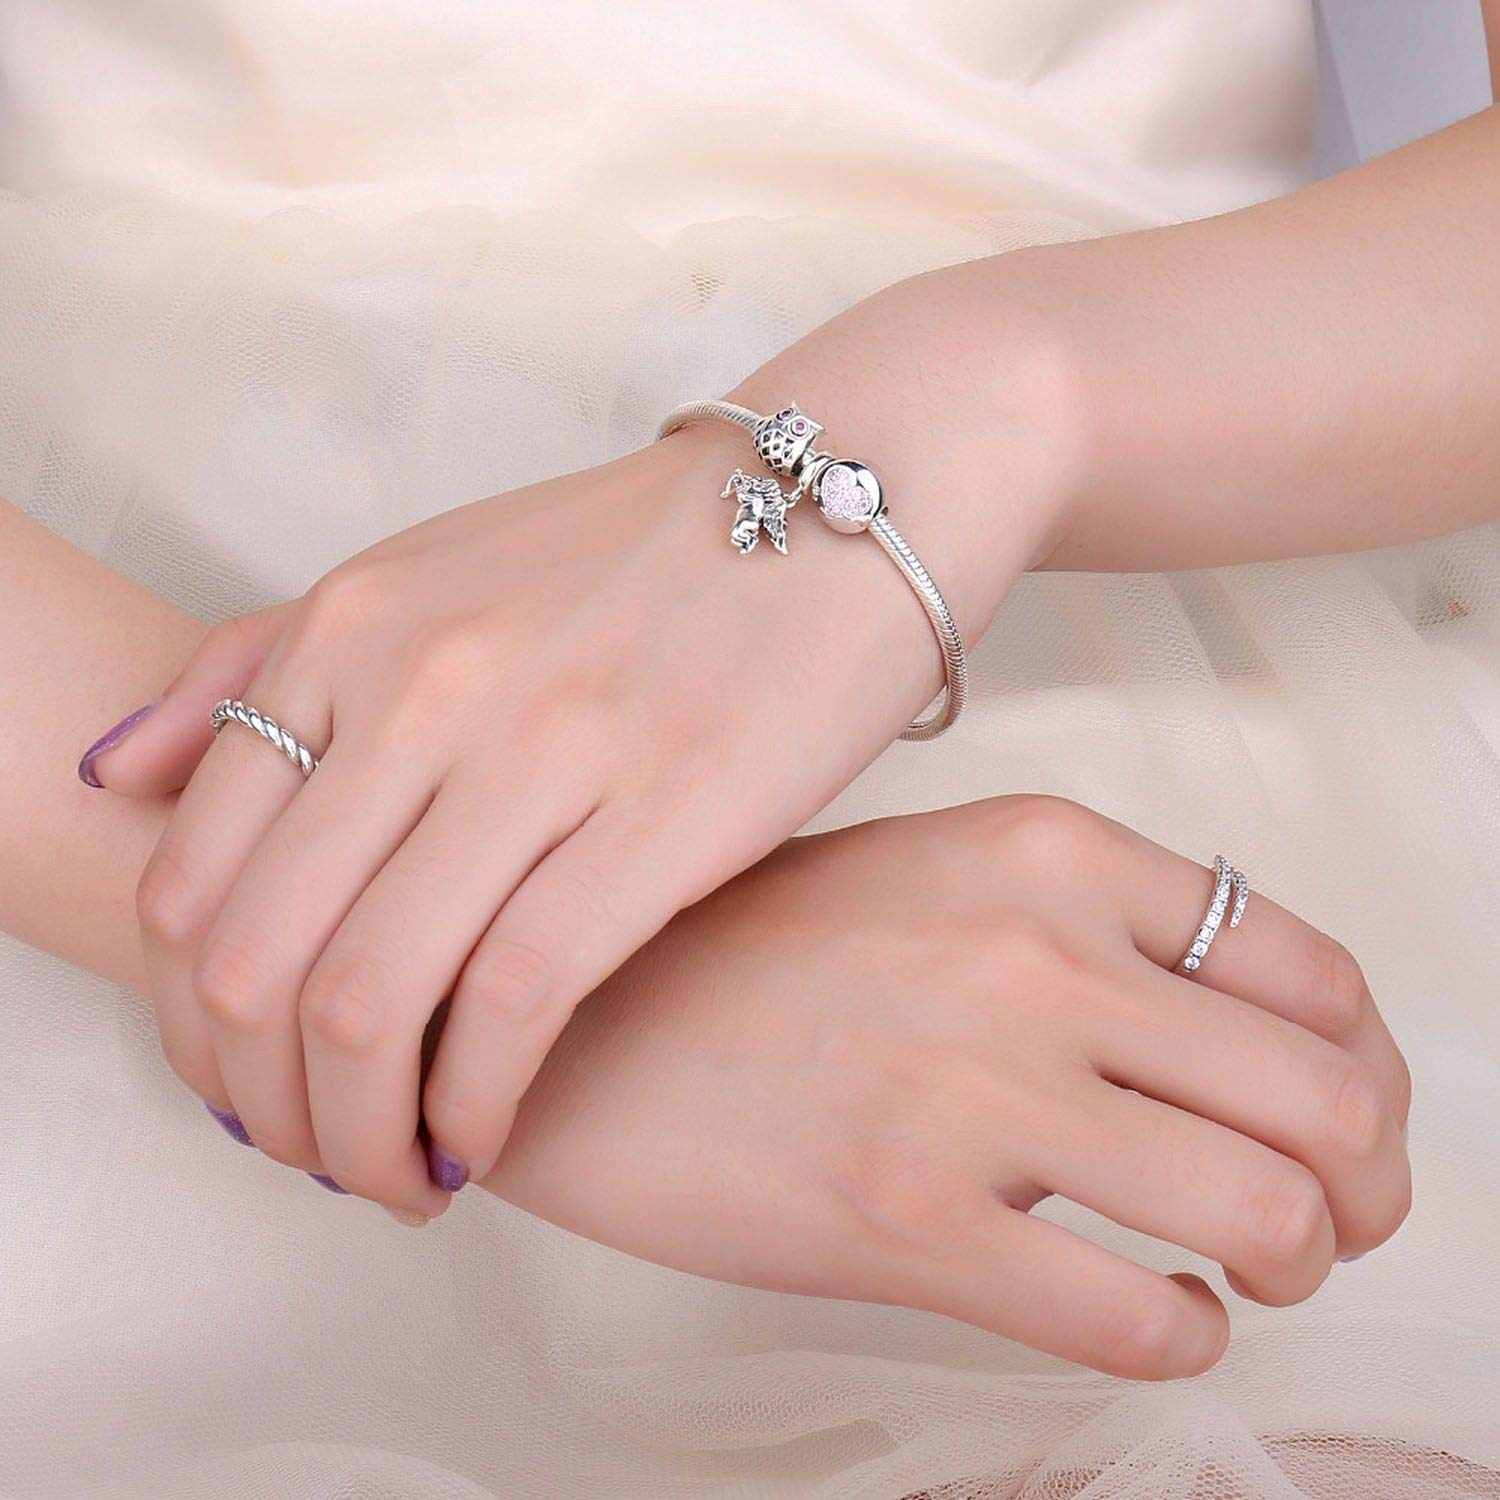 925 Sterling Silver God of Charm Beads Fit Bracelets for Women As Beautiful Gifts,D2